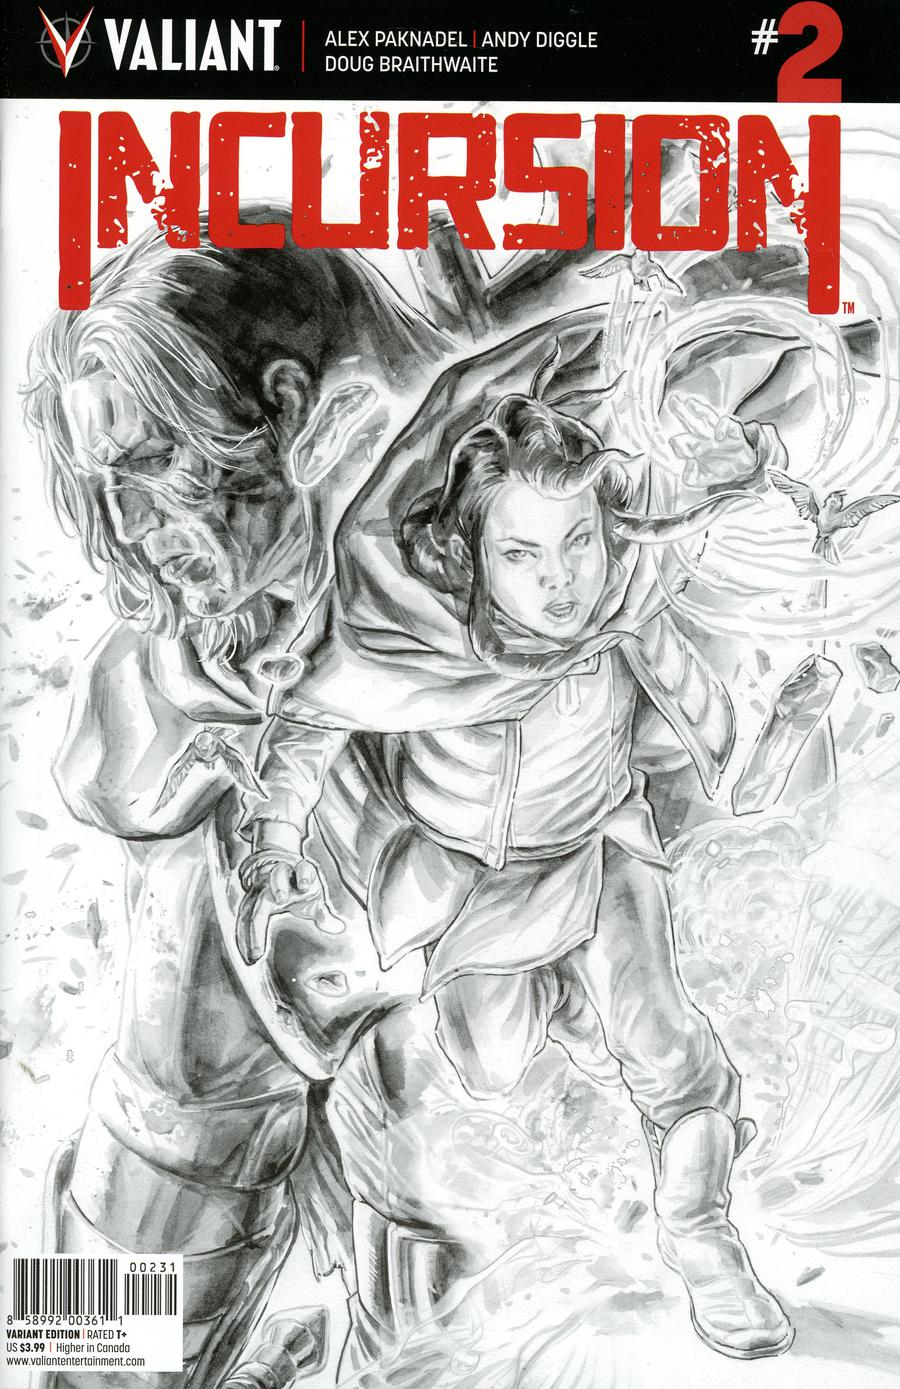 Incursion (Valiant Entertainment) #2 Cover C Variant Doug Braithwaite Sketch Cover